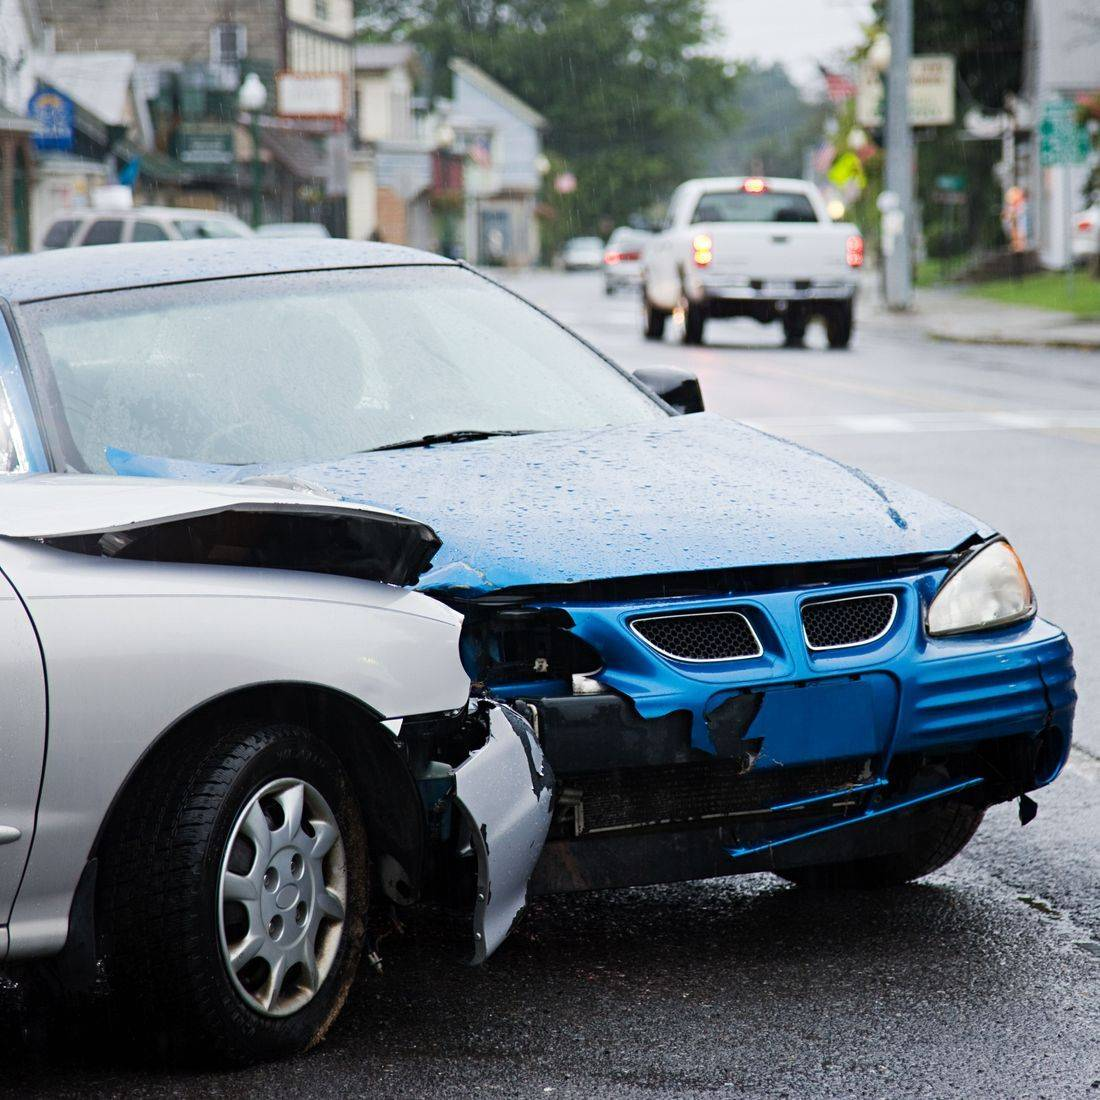 car accident, personal injury, 18-wheeler accidents, Serious personal injury